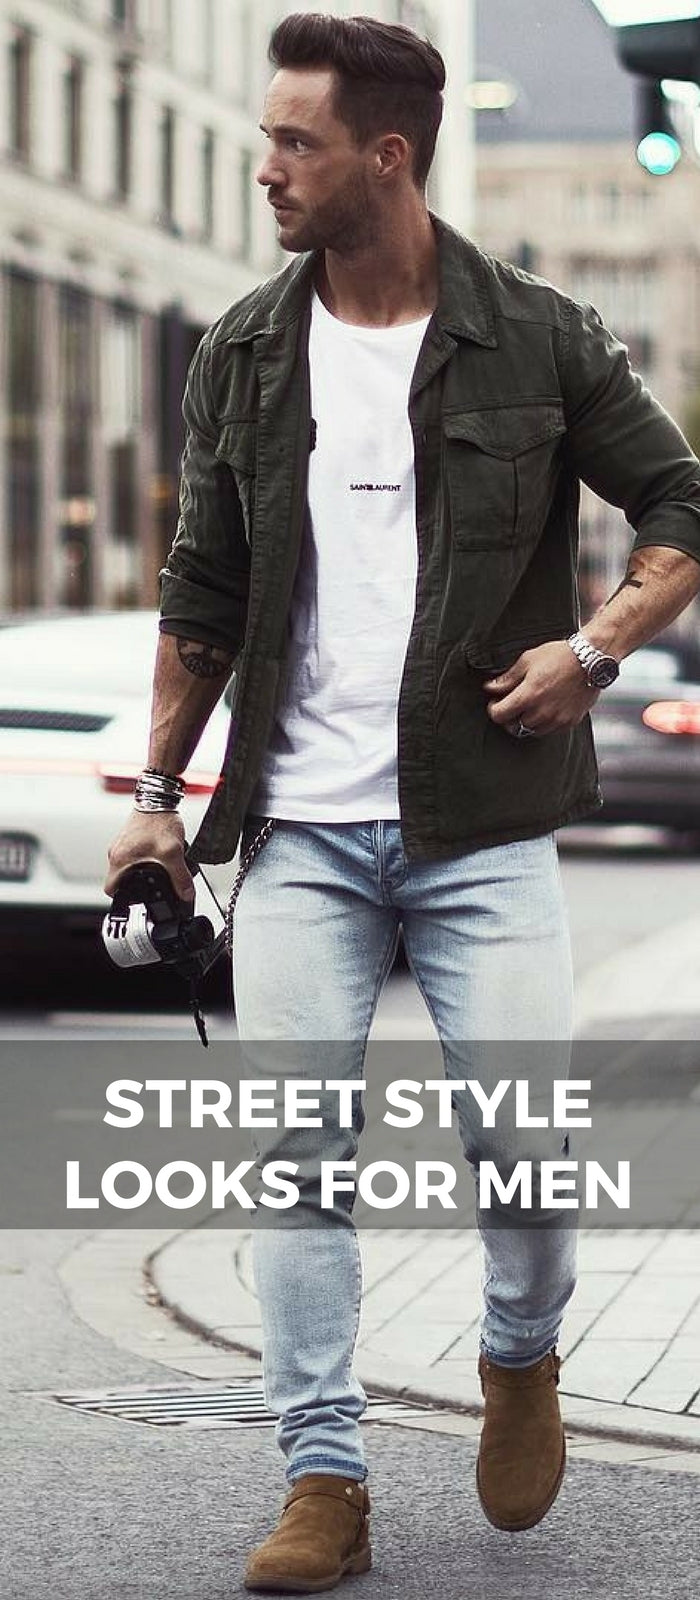 Street style looks for men magic fox